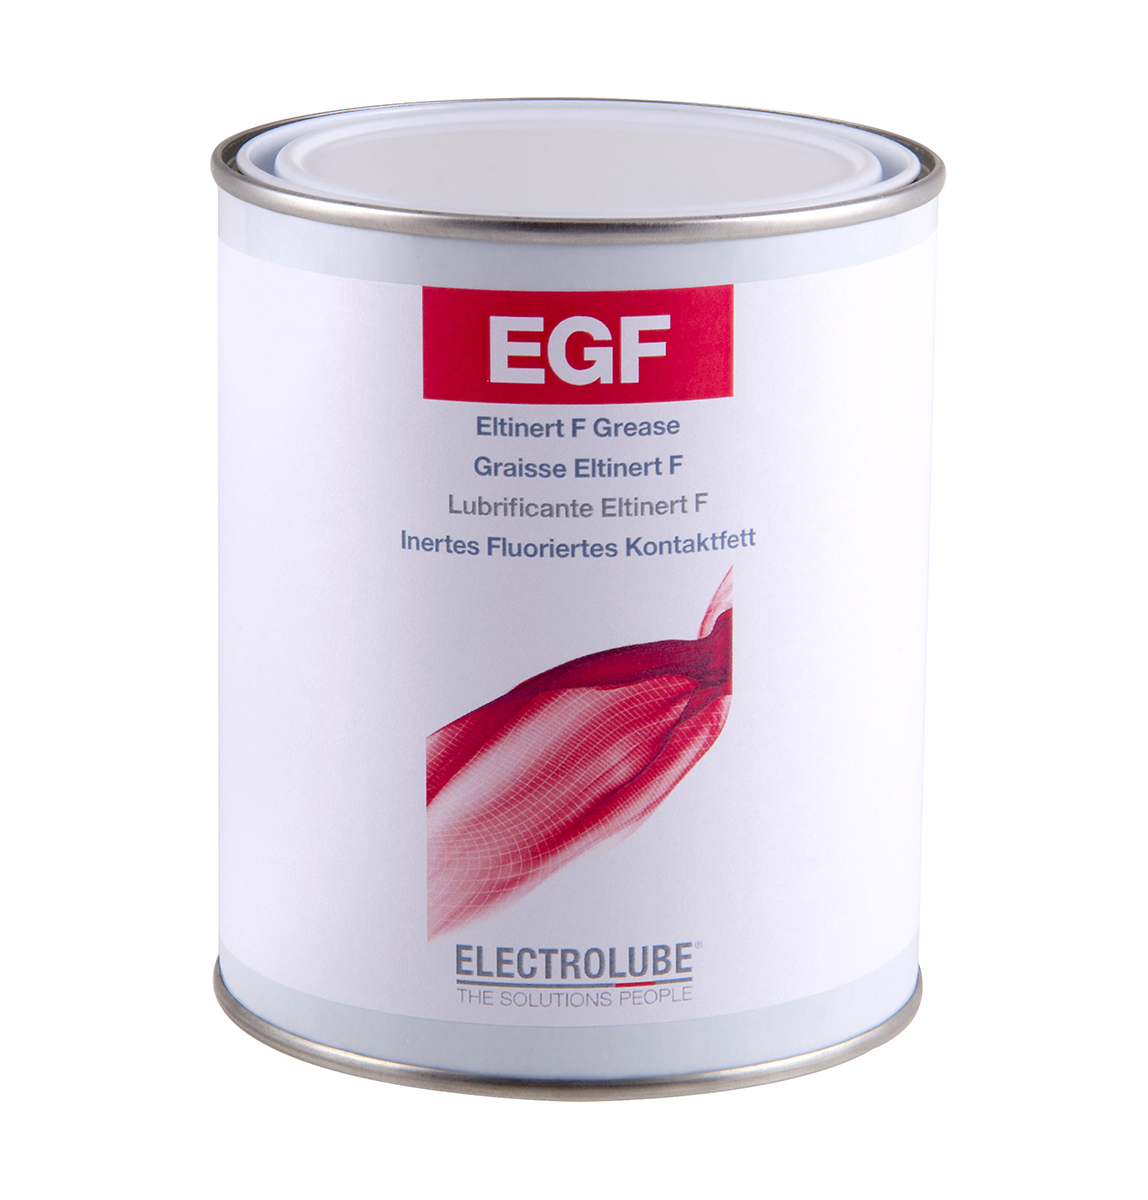 Eltinert F Grease - EGF